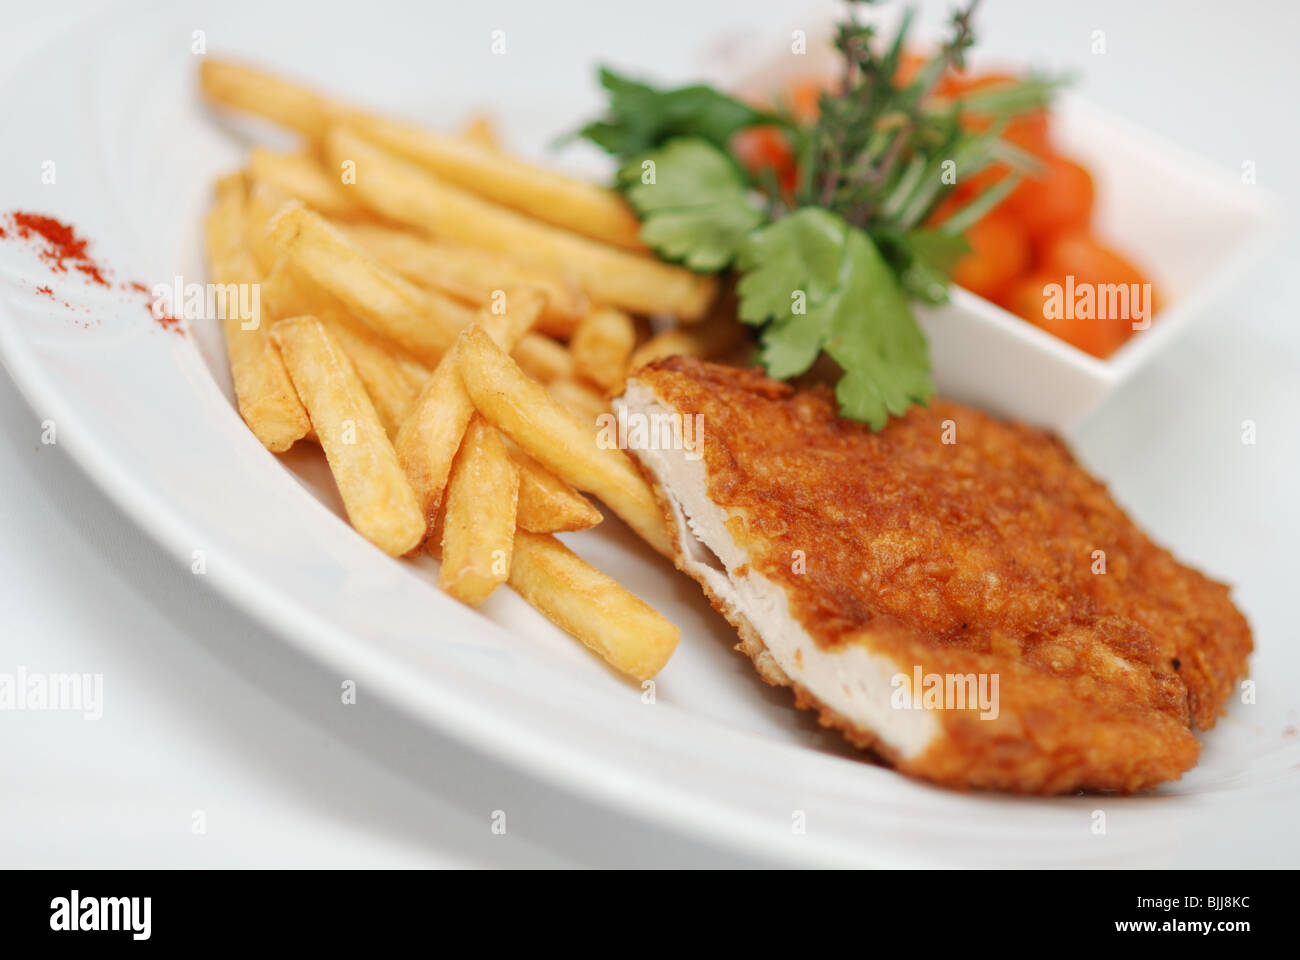 Fried chicken fillet with chips and carrots served for lunch in restaurant - Stock Image